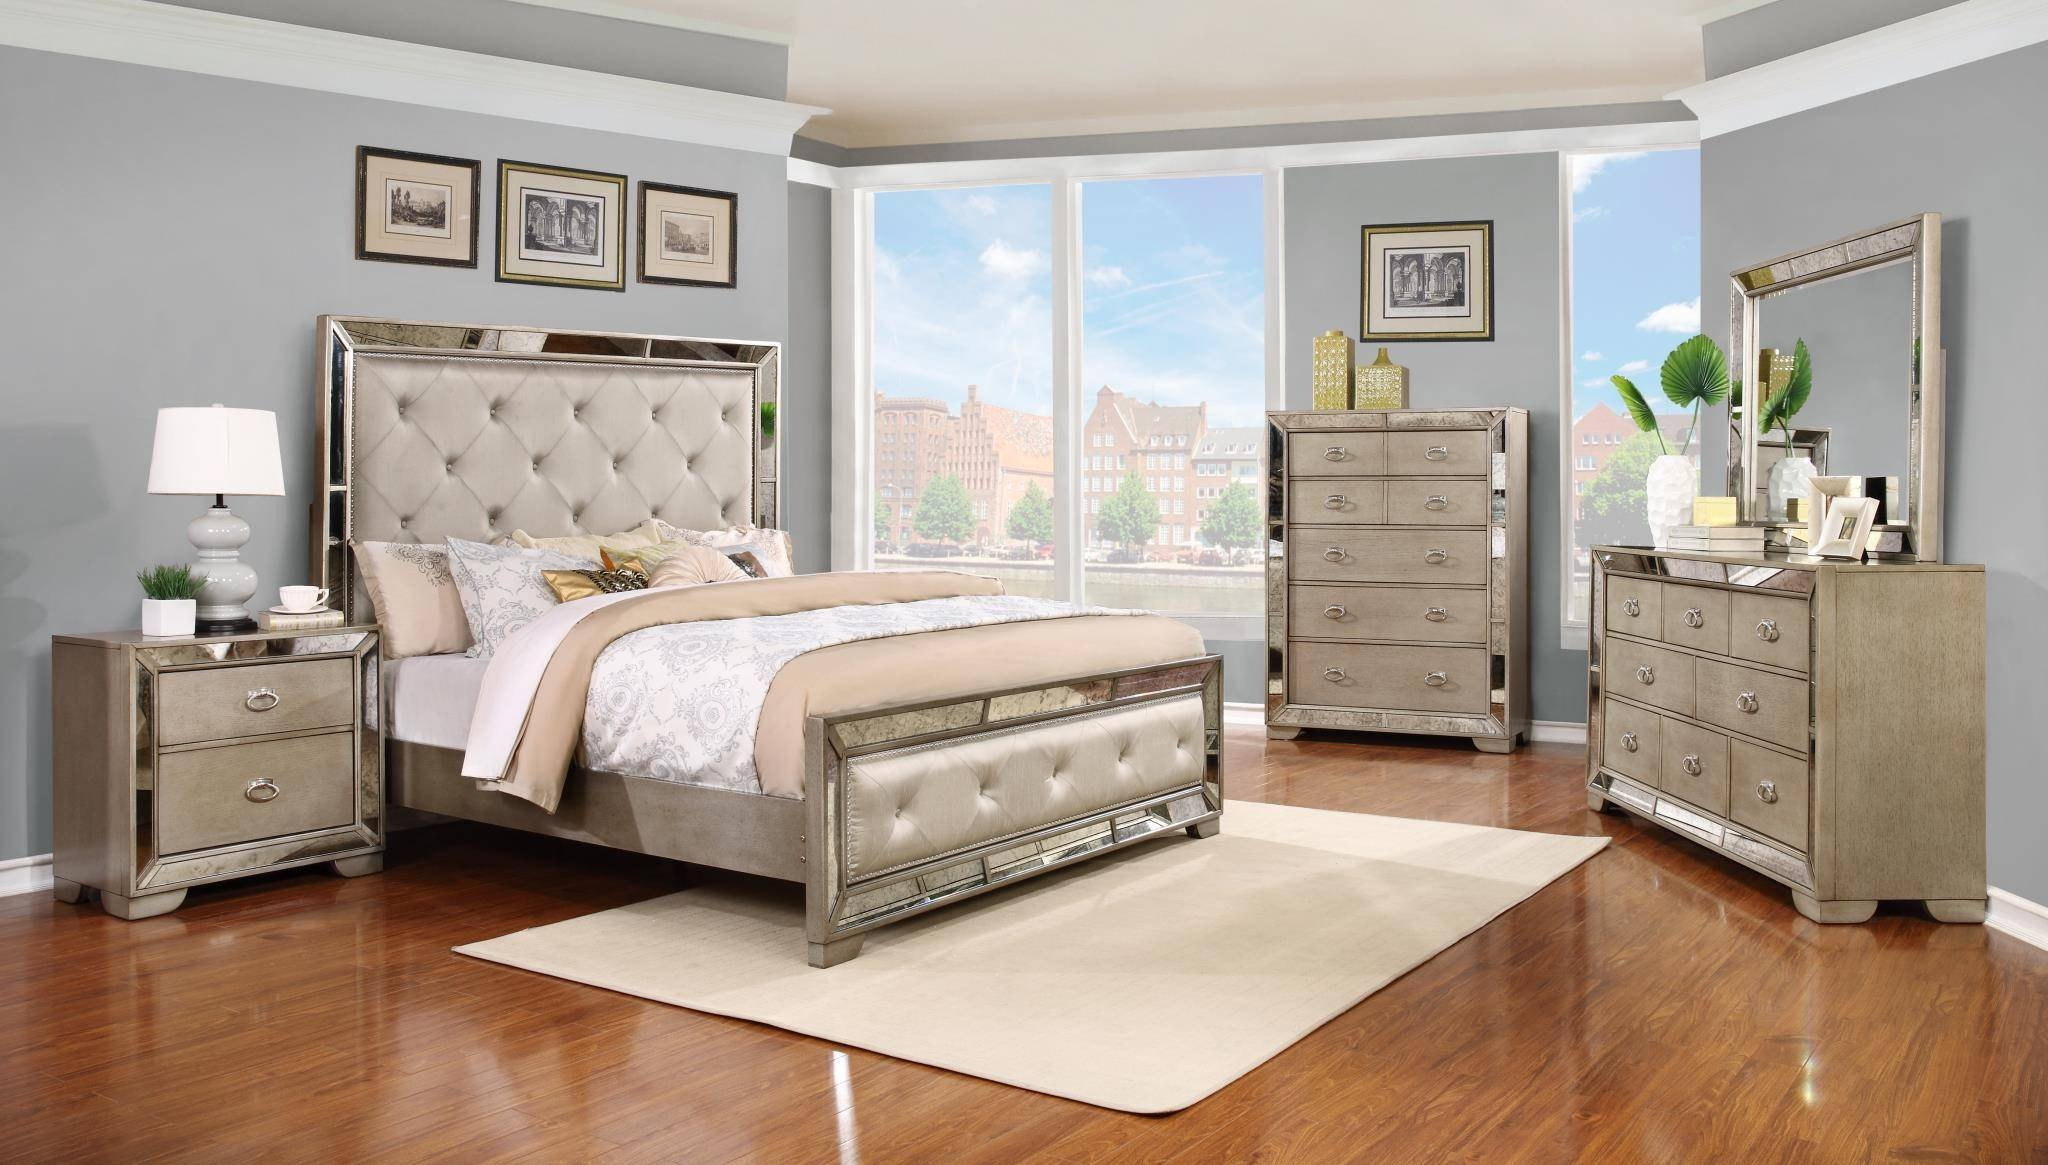 Complete Bedroom Furniture Set Awesome soflex Lilyanna Diamond Tufted Headboard Queen Bedroom Set